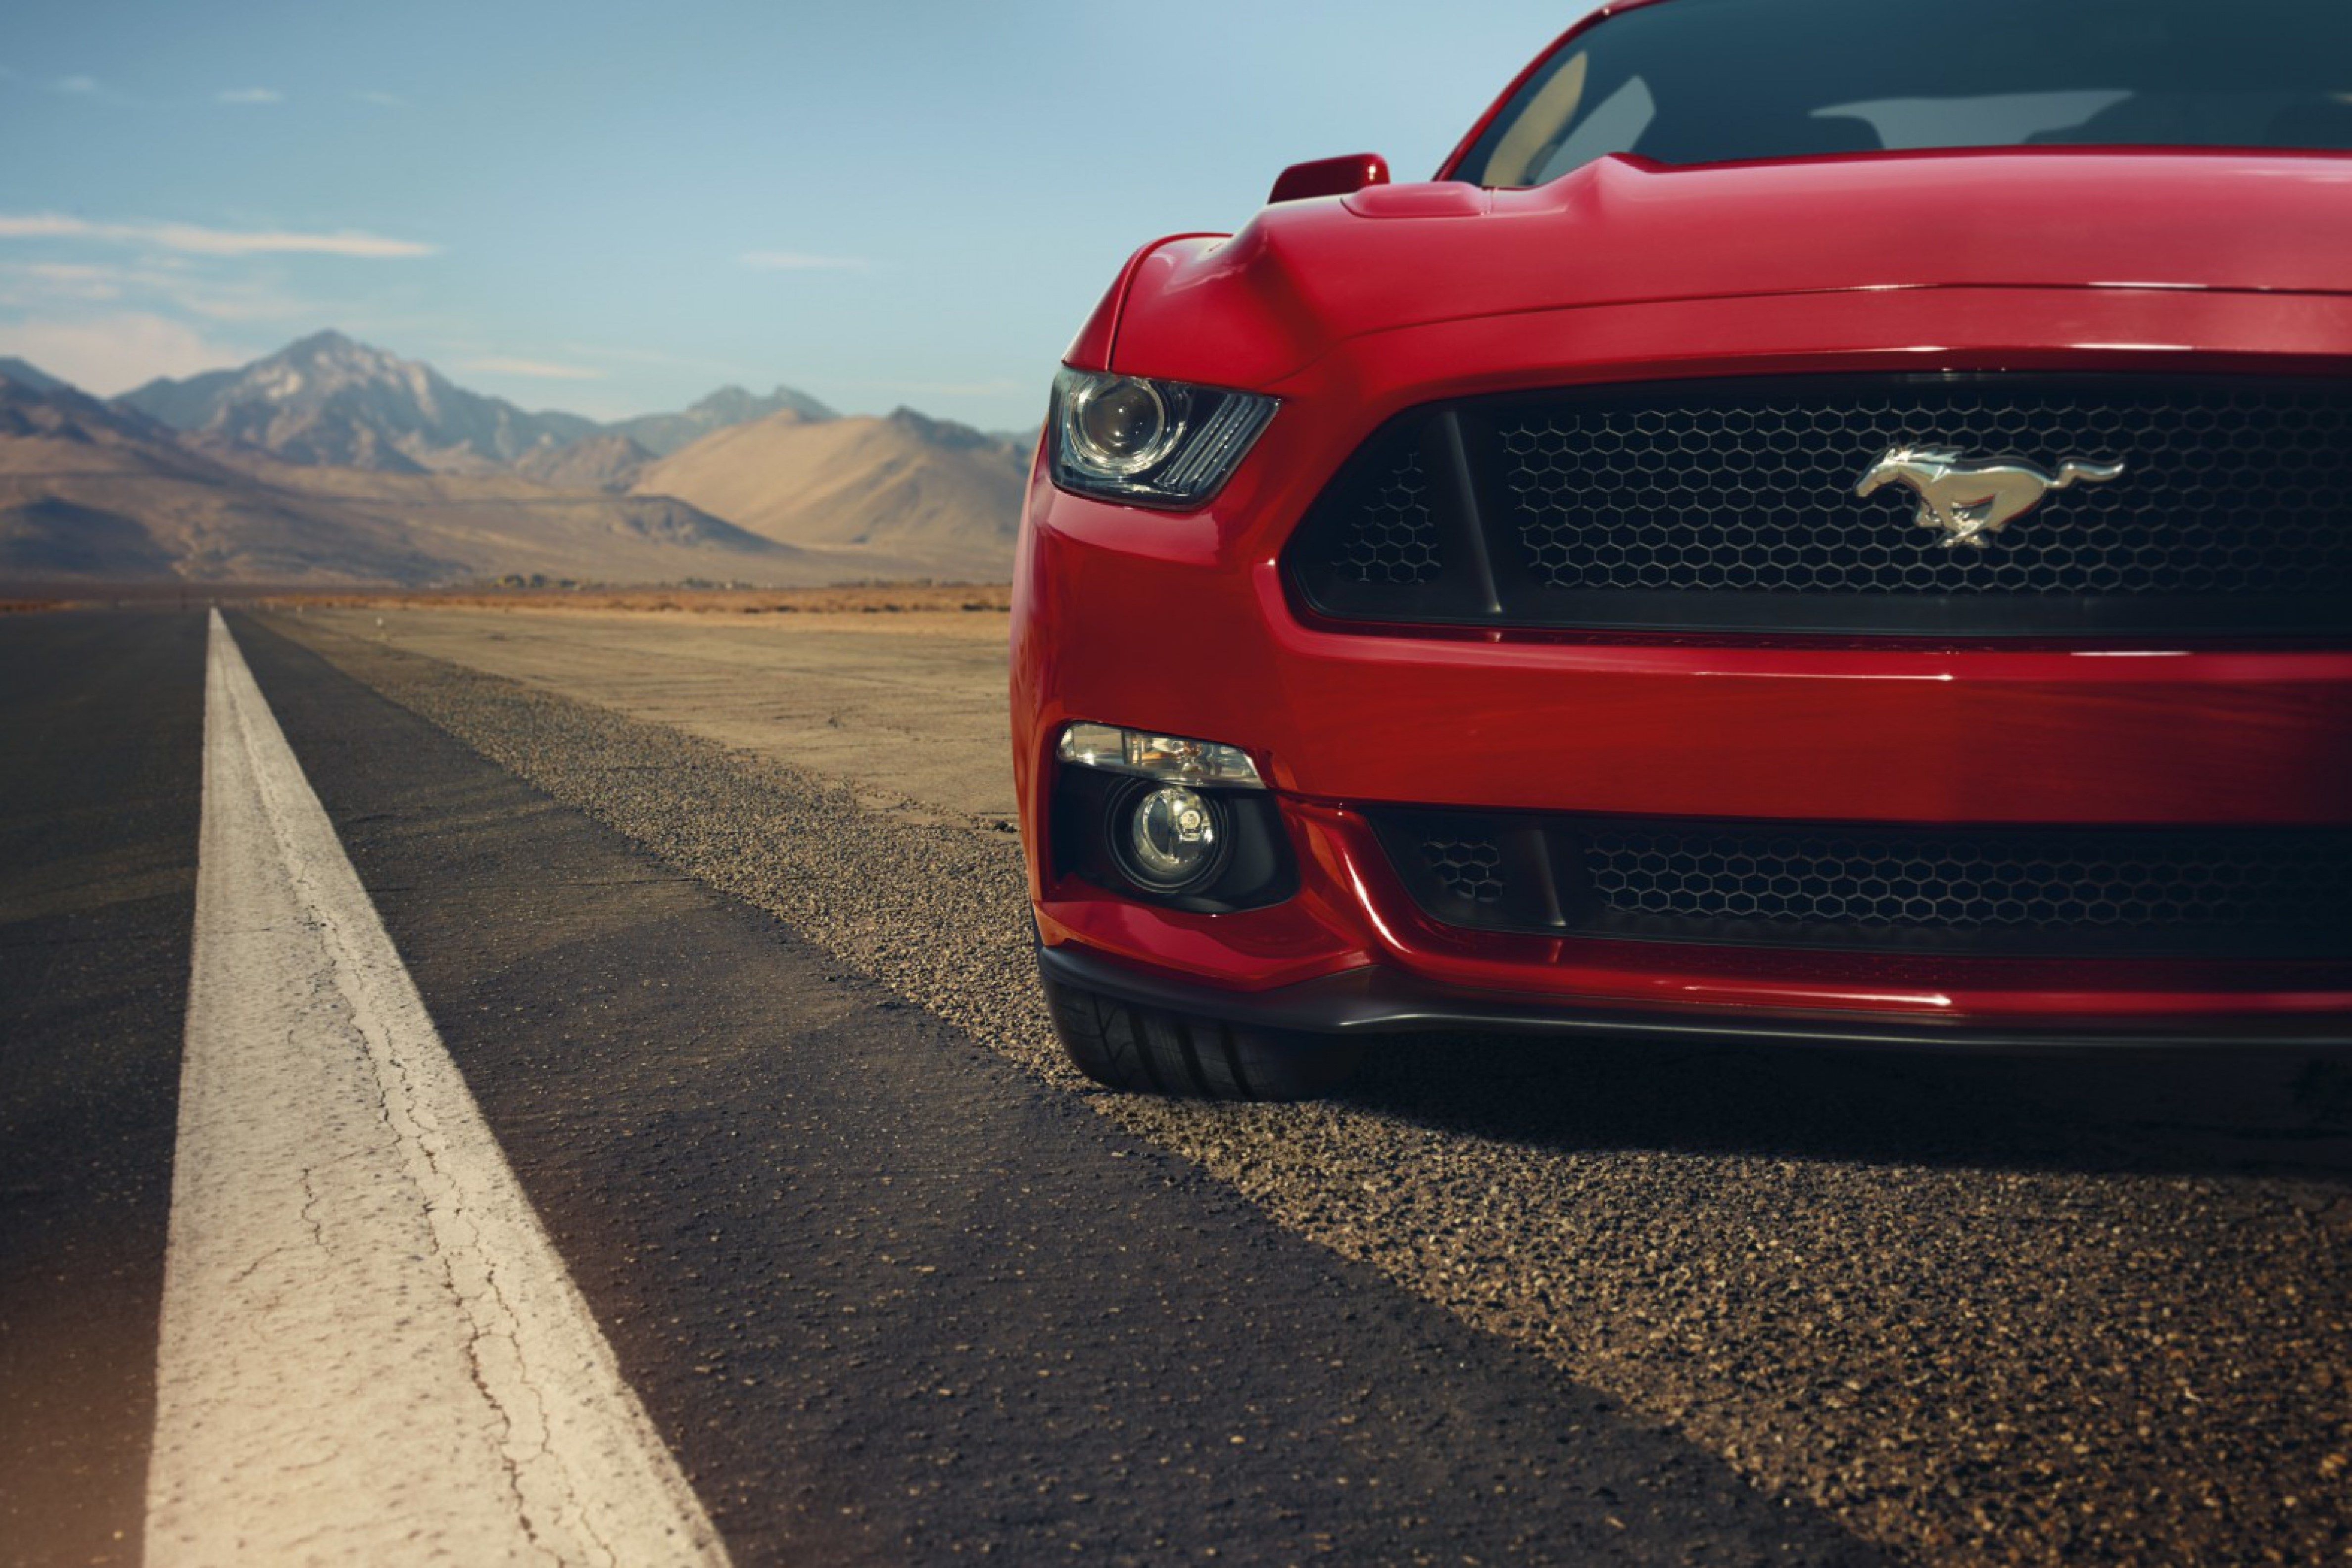 1421736 Ford Mustang Category Widescreen Wallpaper Ford Mustang